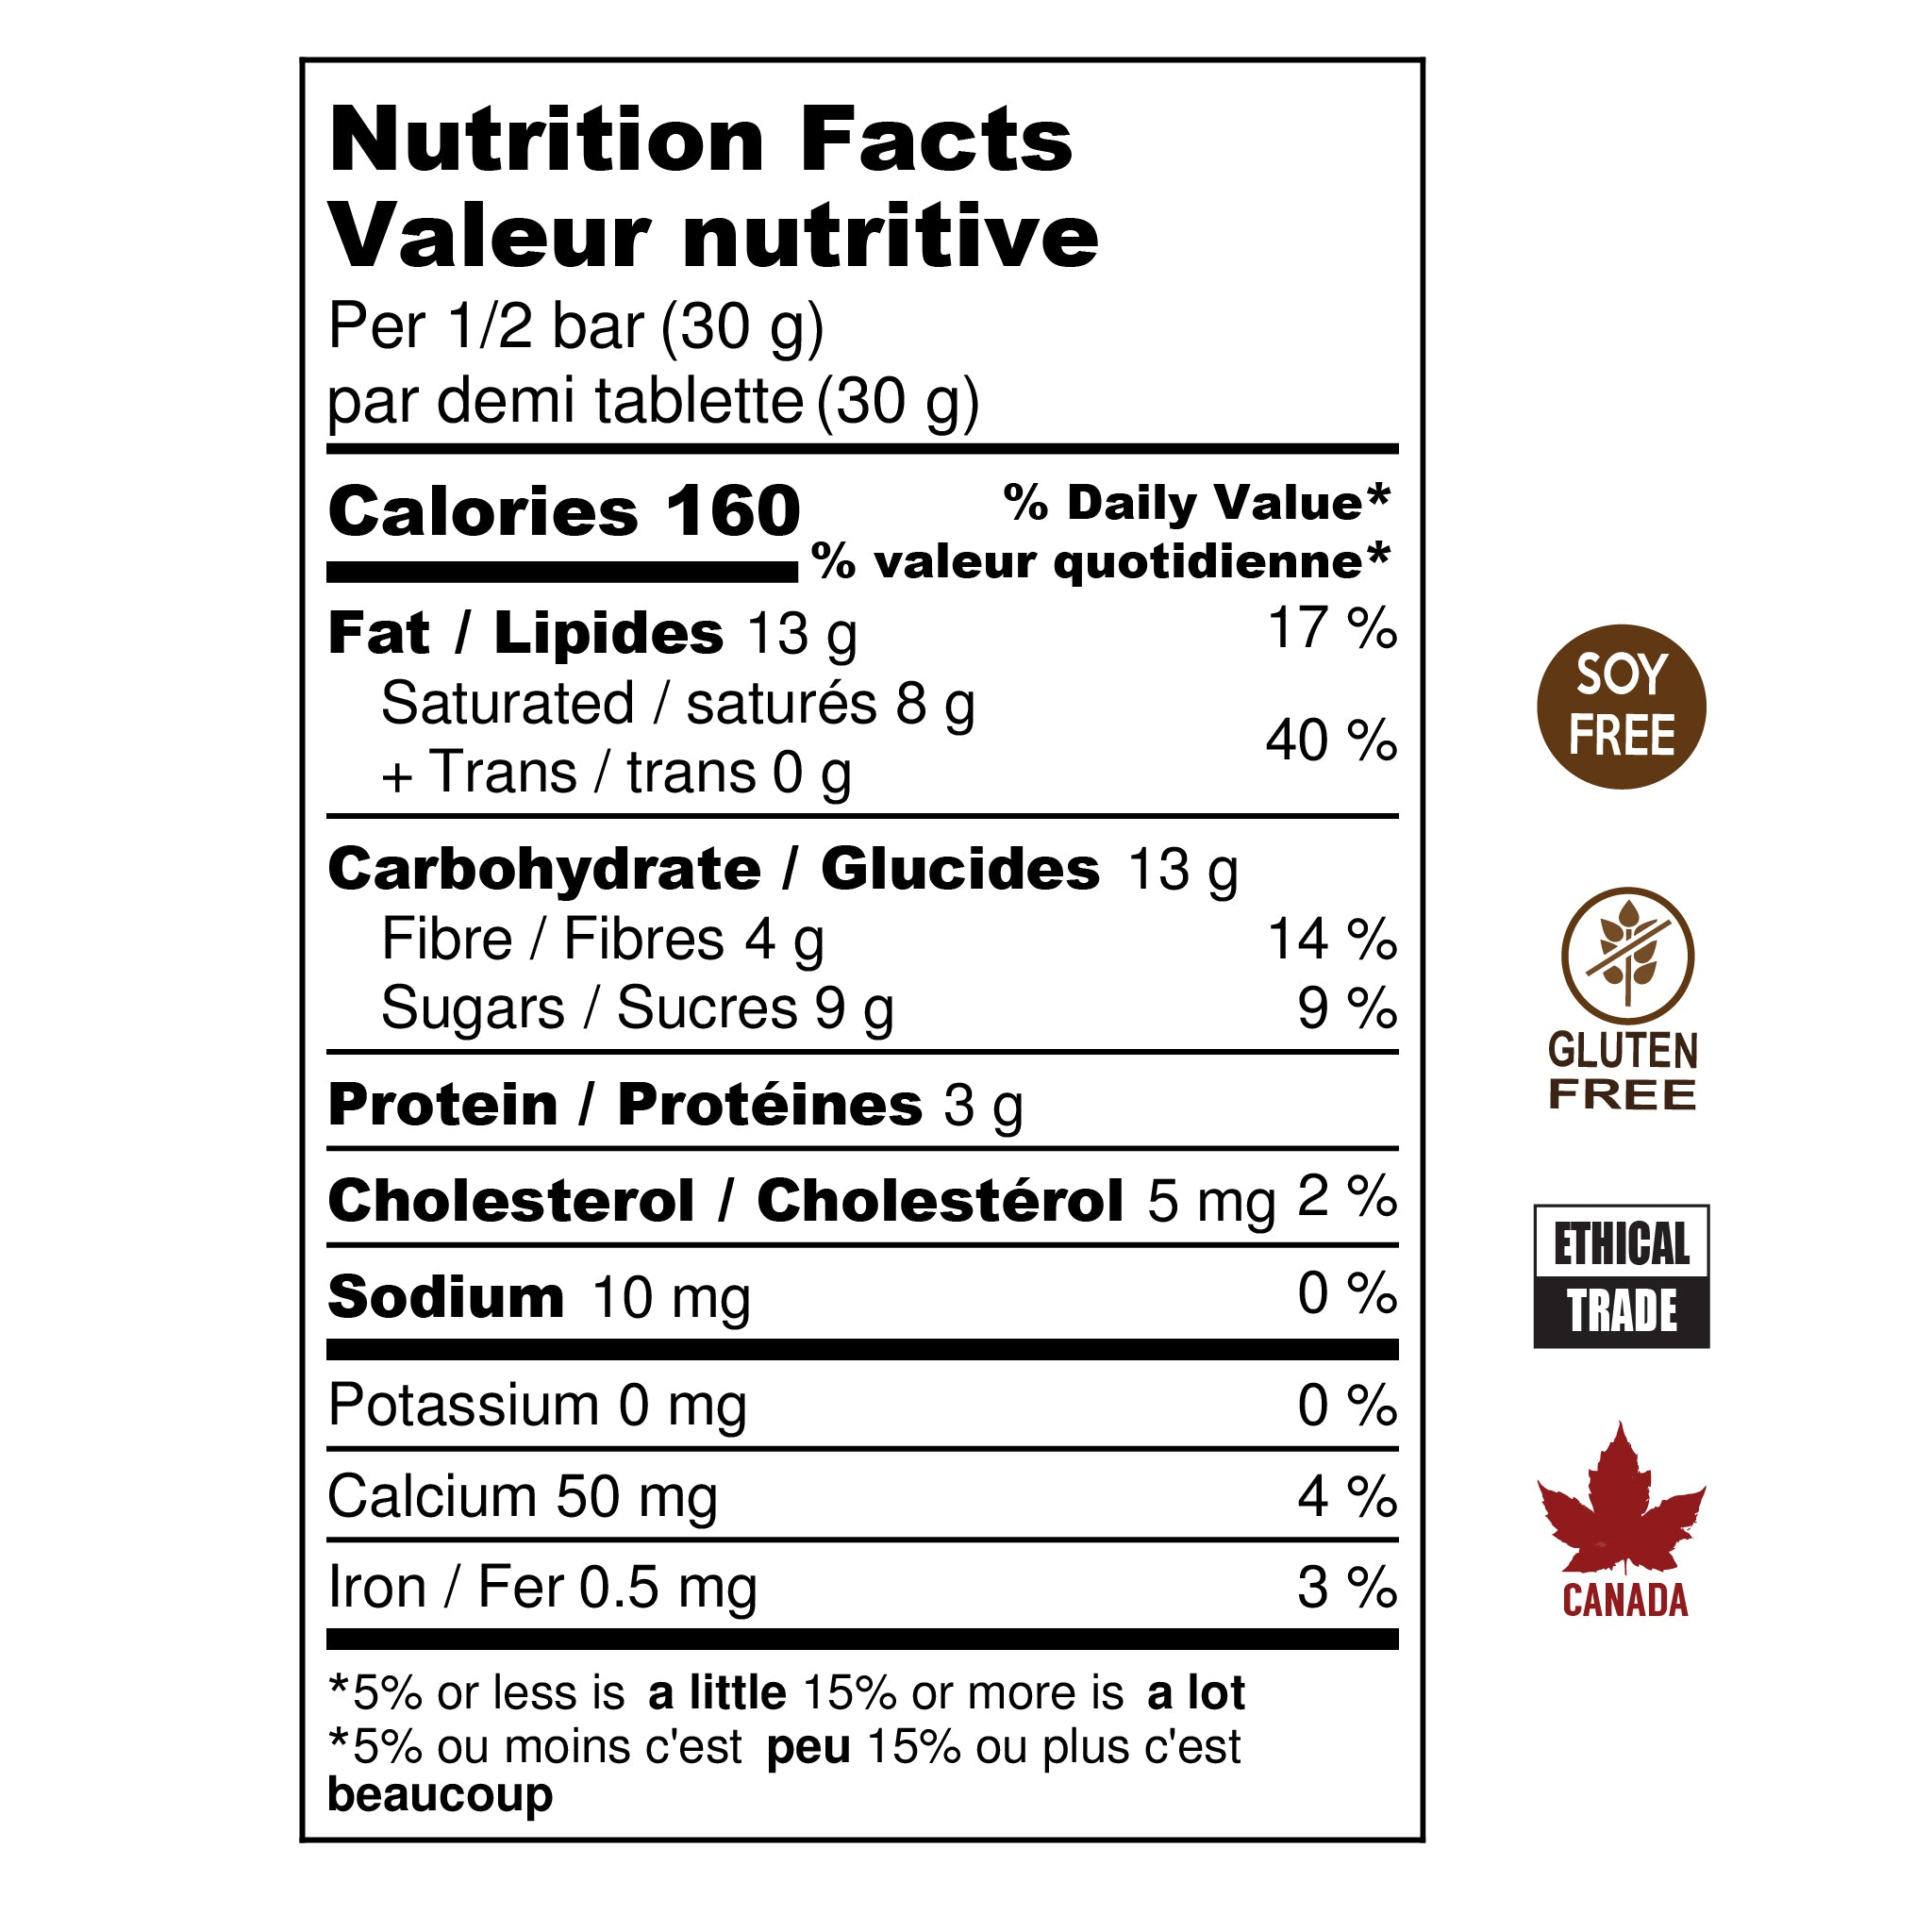 Mocha Milk nutritional information, Soy Free, Gluten Free, Ethical Trade, Made in Canada